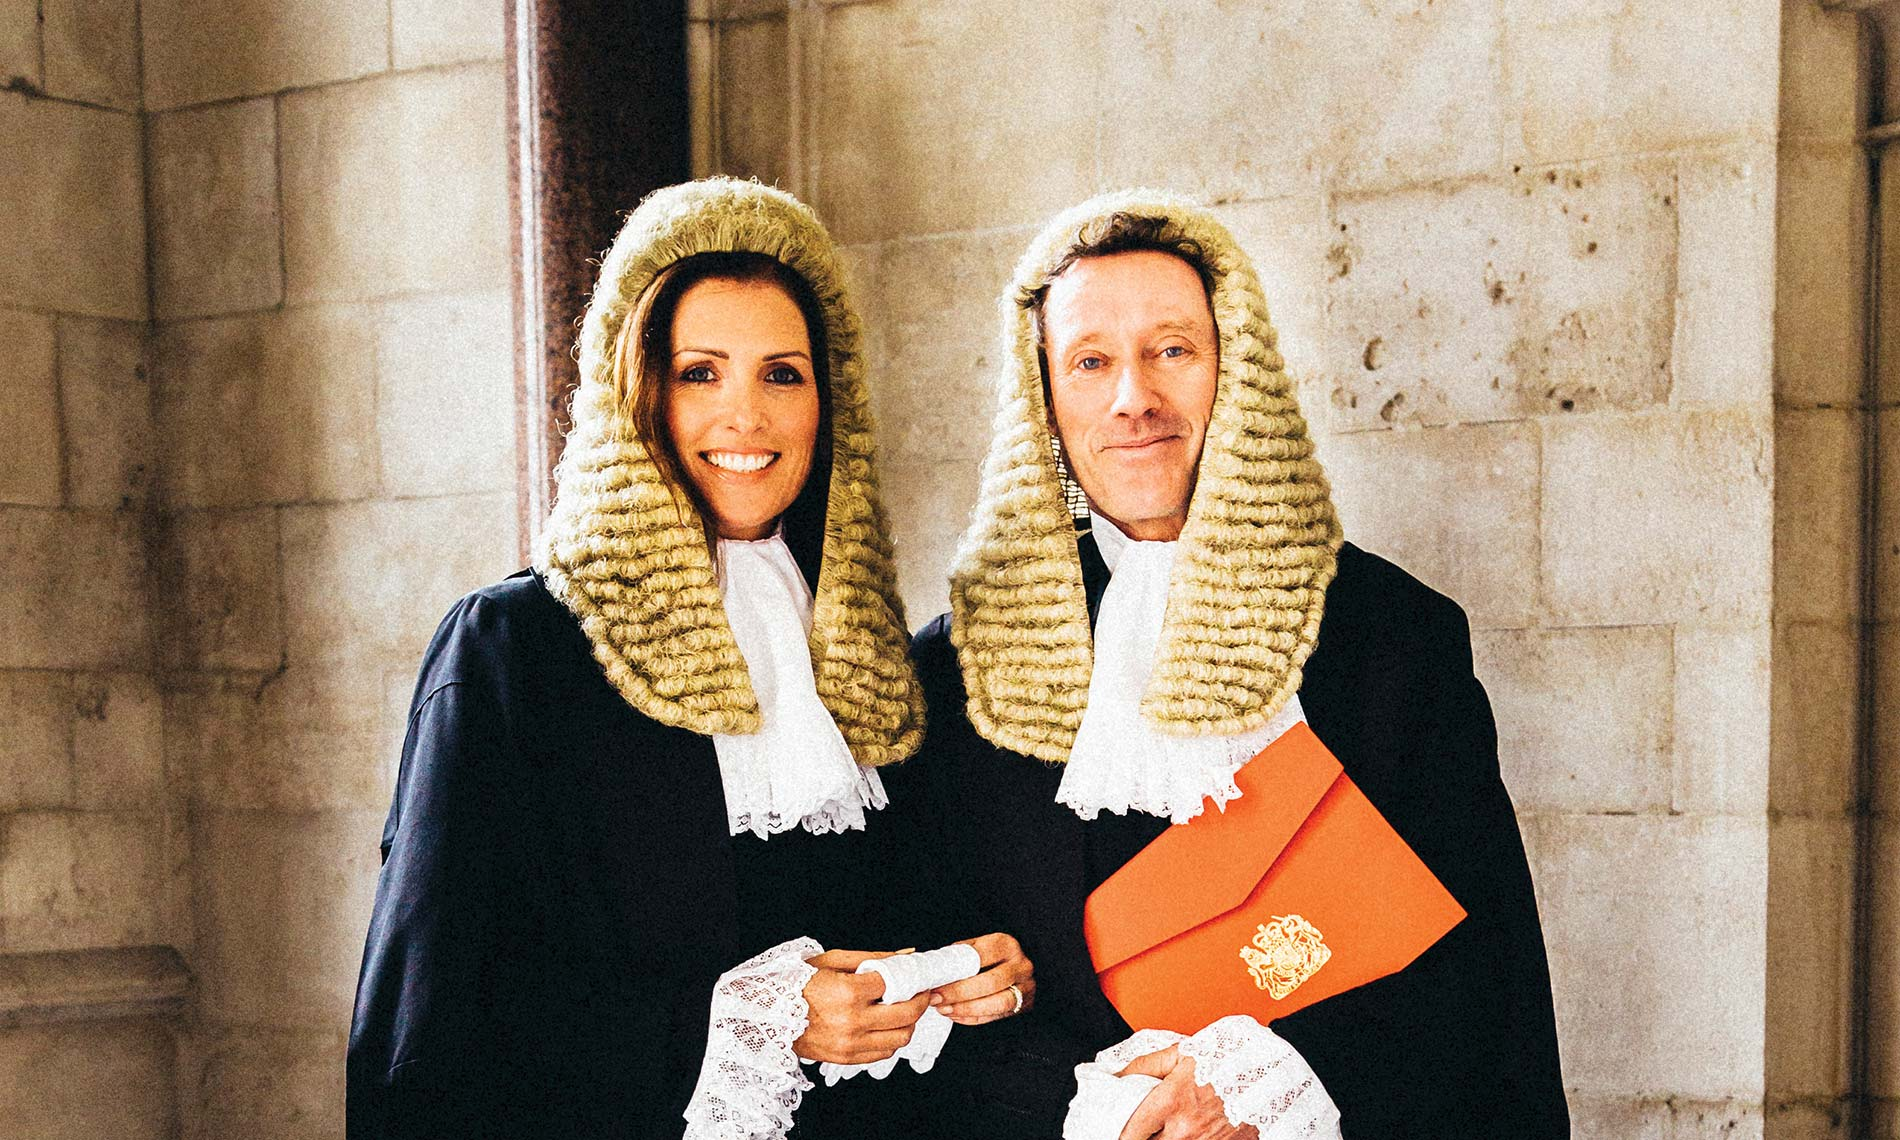 Sophie Lamb QC and Louis Flannery QC